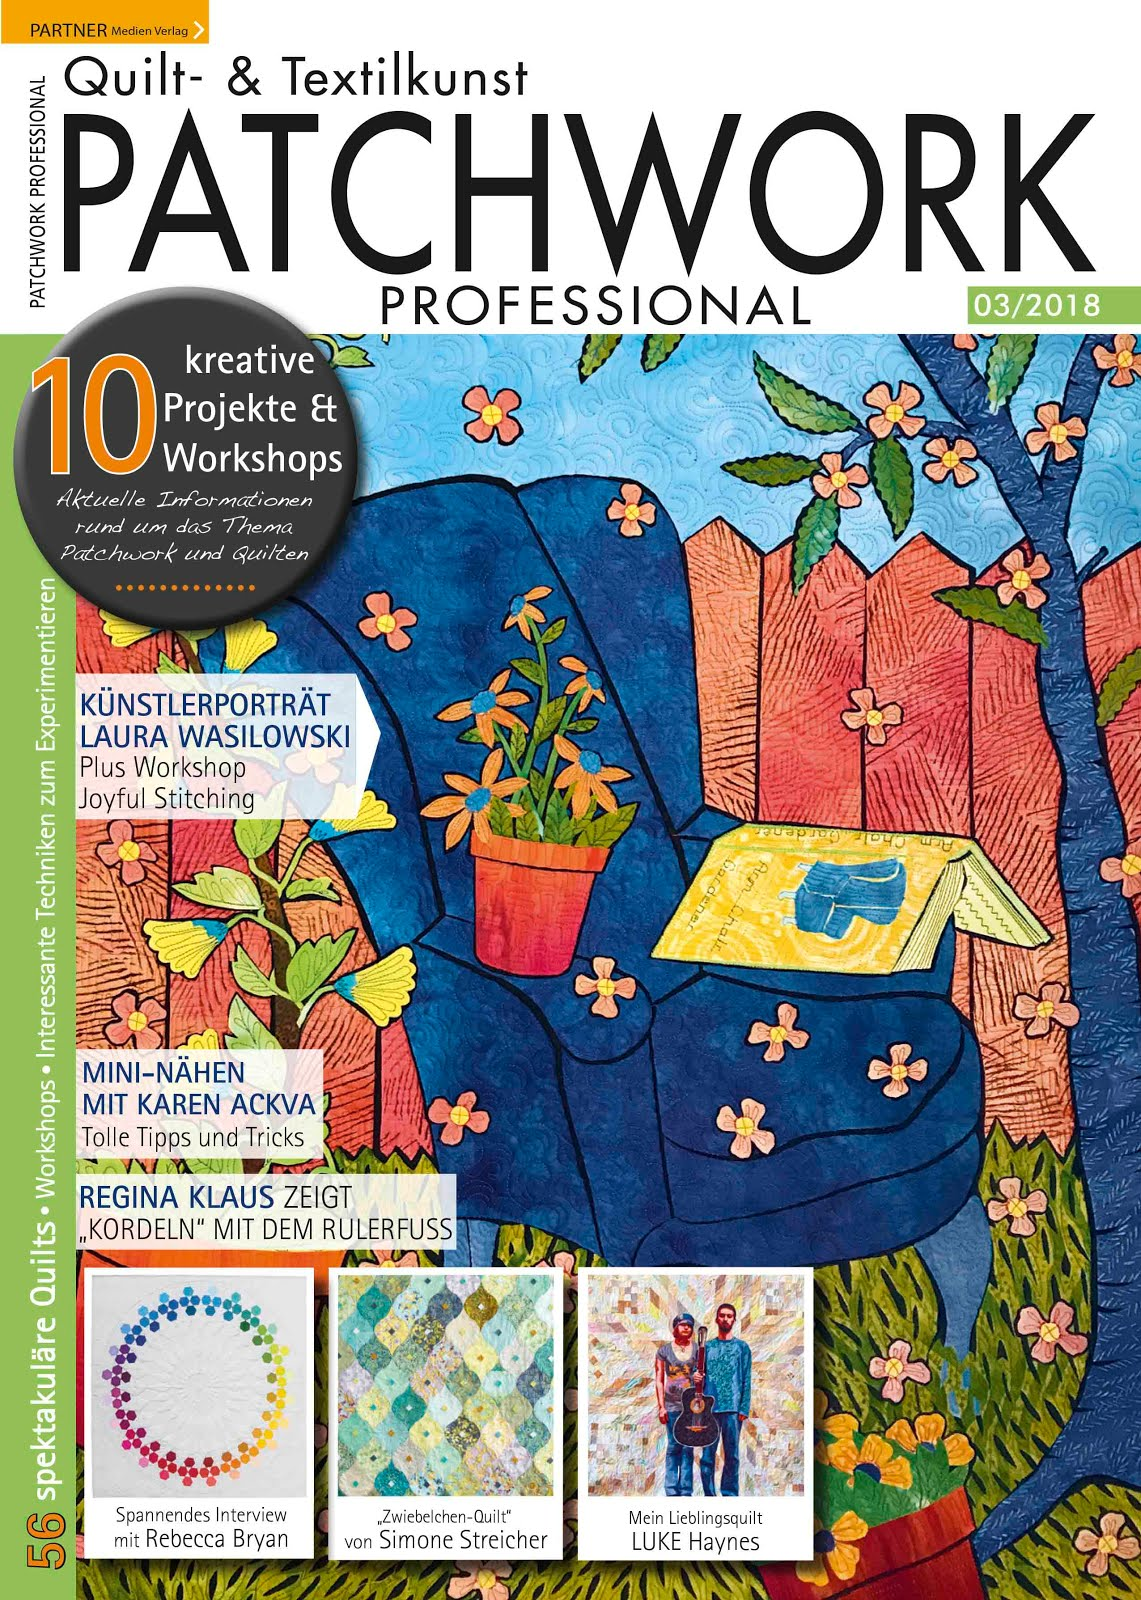 Patchwork Prossional 3/2018